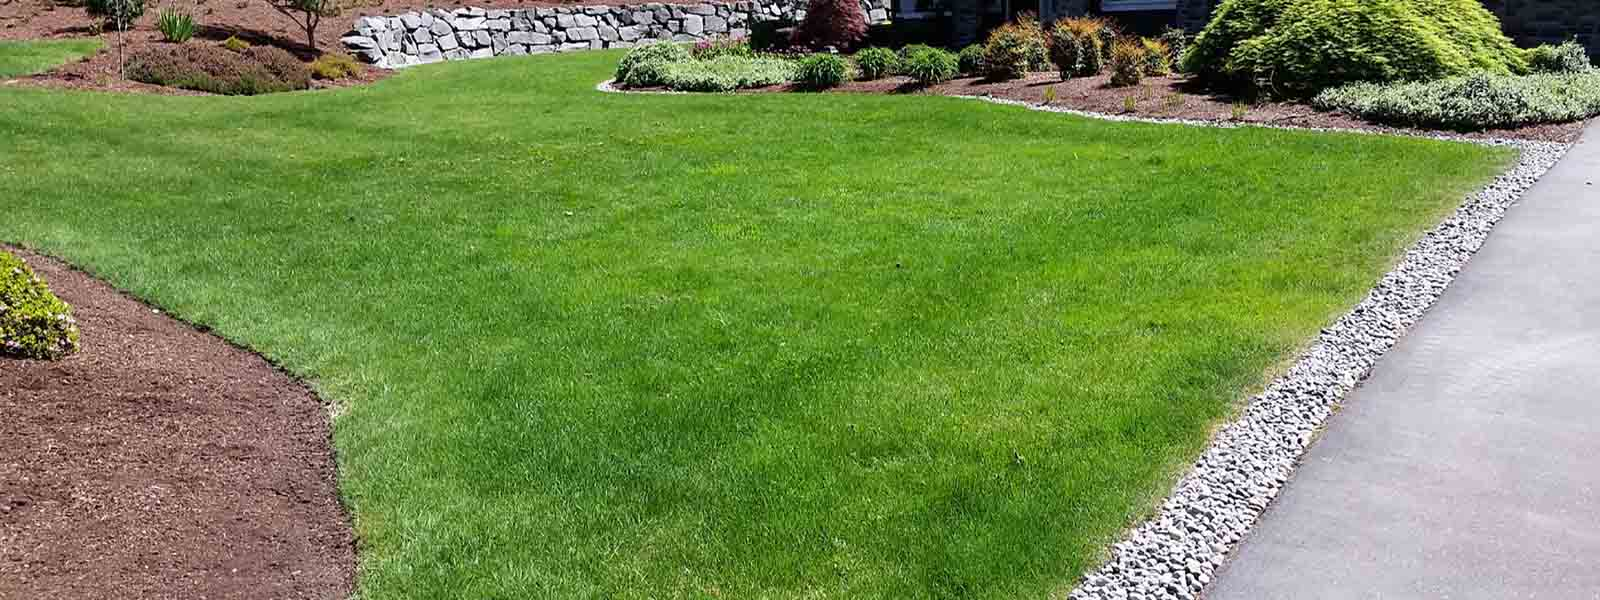 The Lawn Barber Land Clearing & Grading Long Island